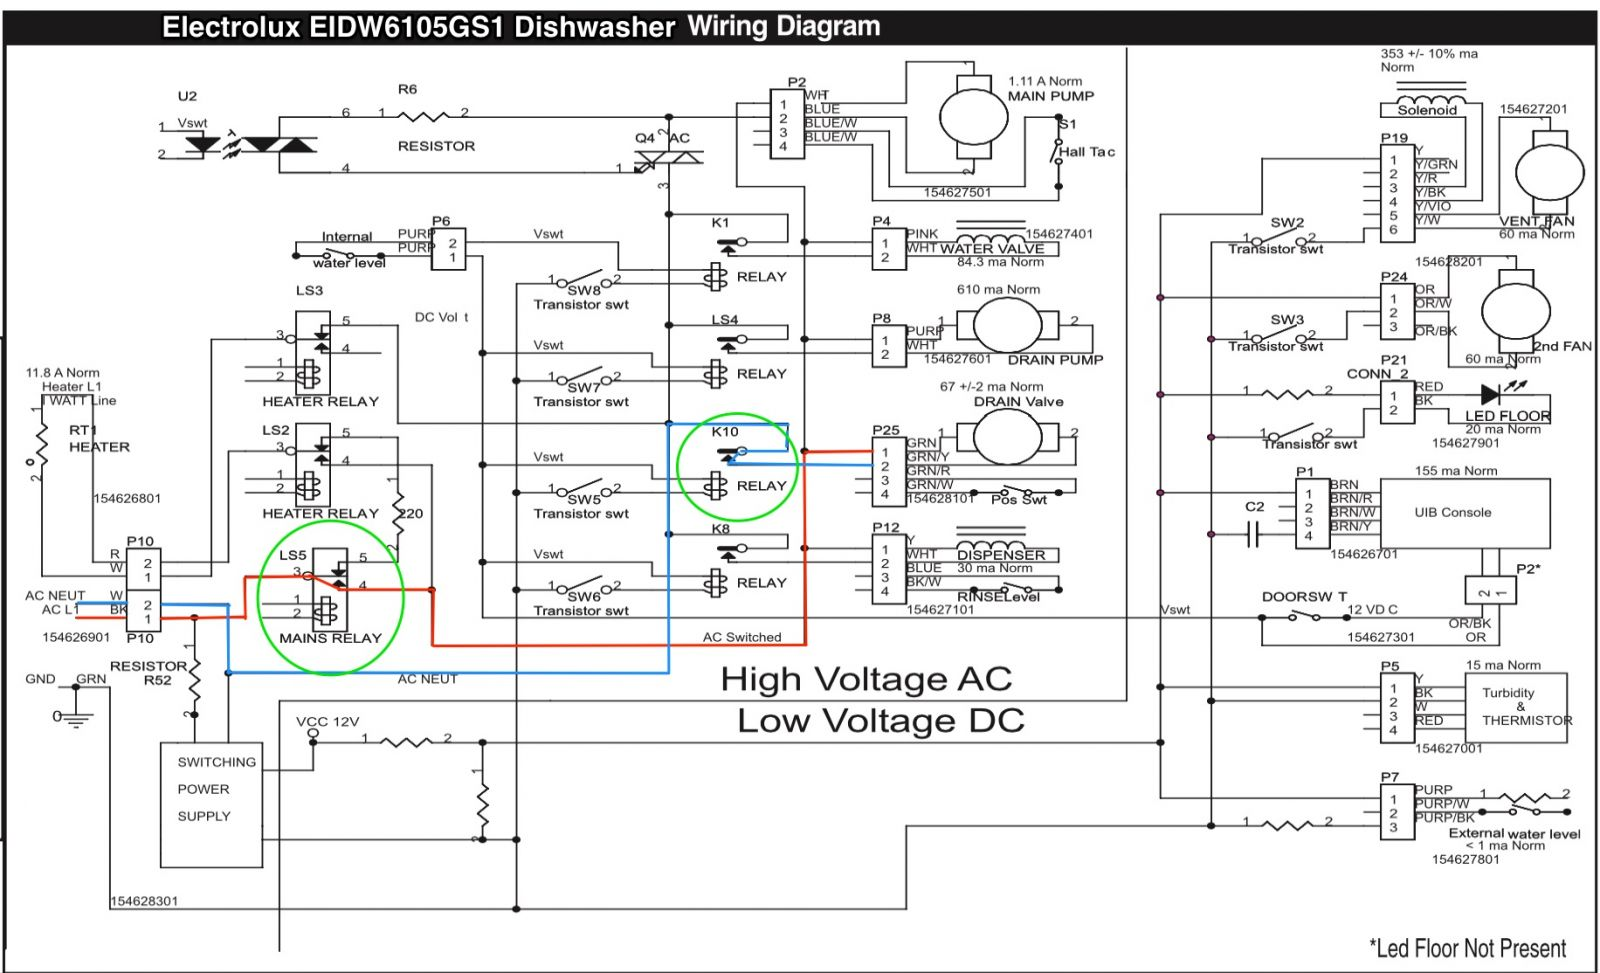 Wiring Diagram Dishwasher Starting Know About Kel Alternator Electrolux Eidw6105gs1 The Appliantology Rh Org Kenmore